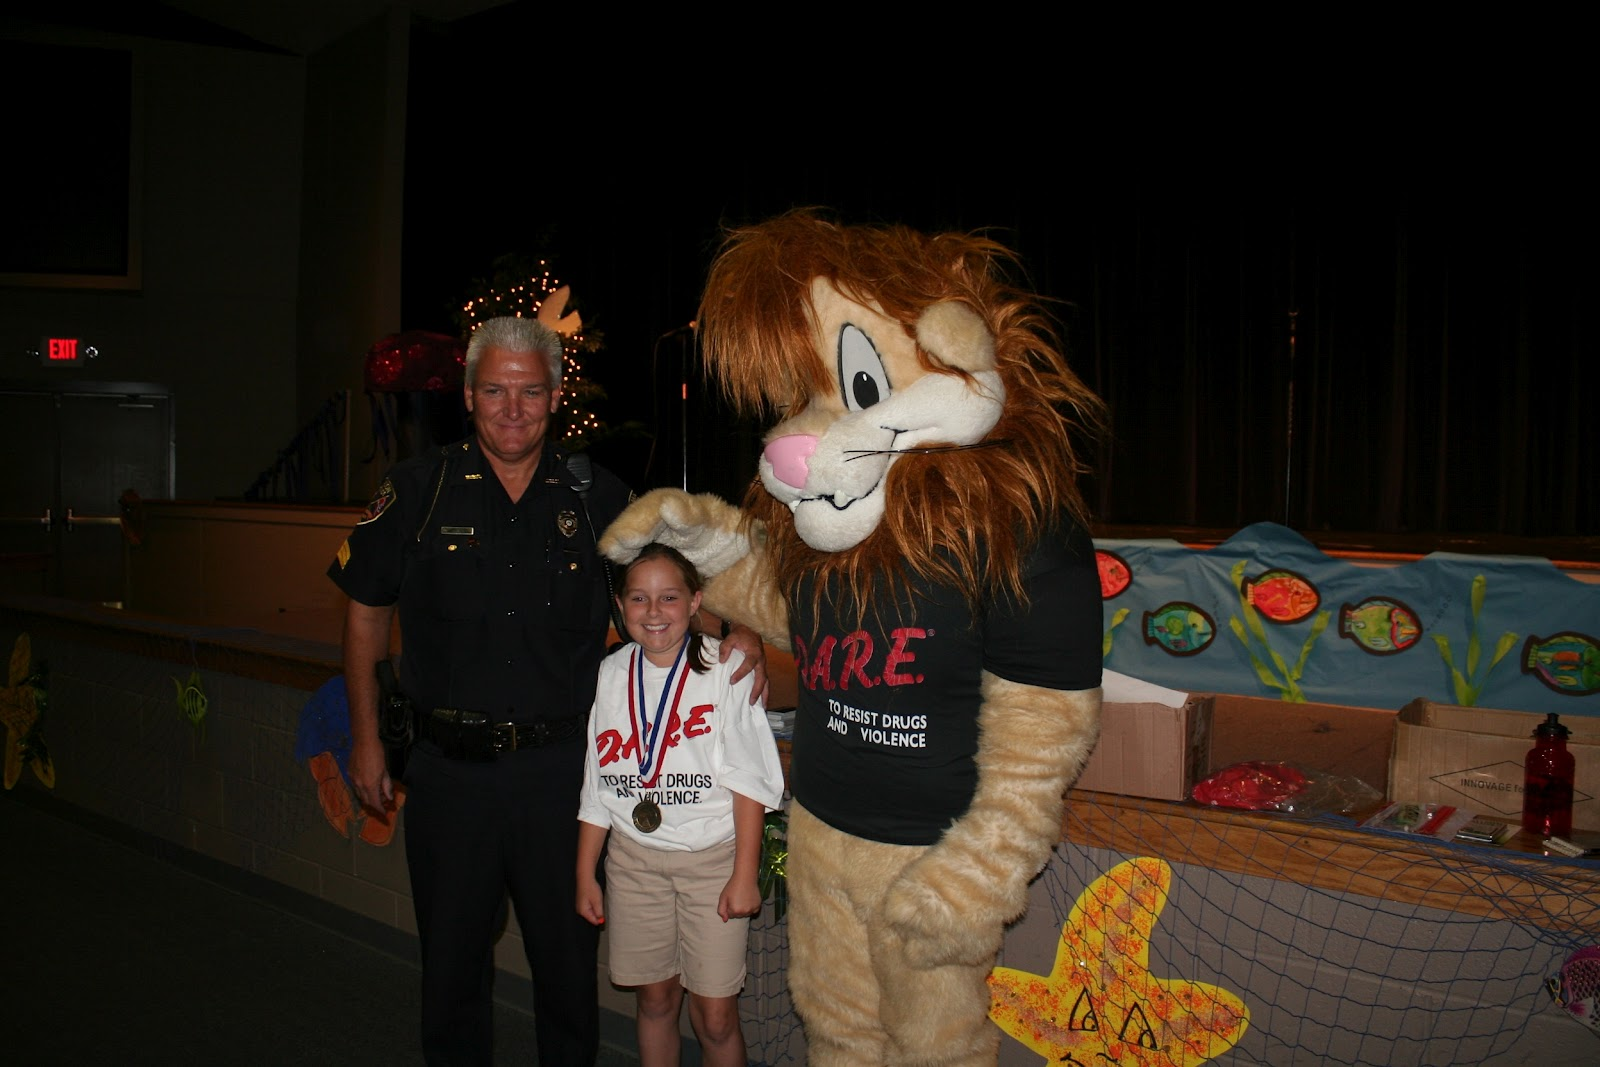 d.a.r.e essay winners 5th grade